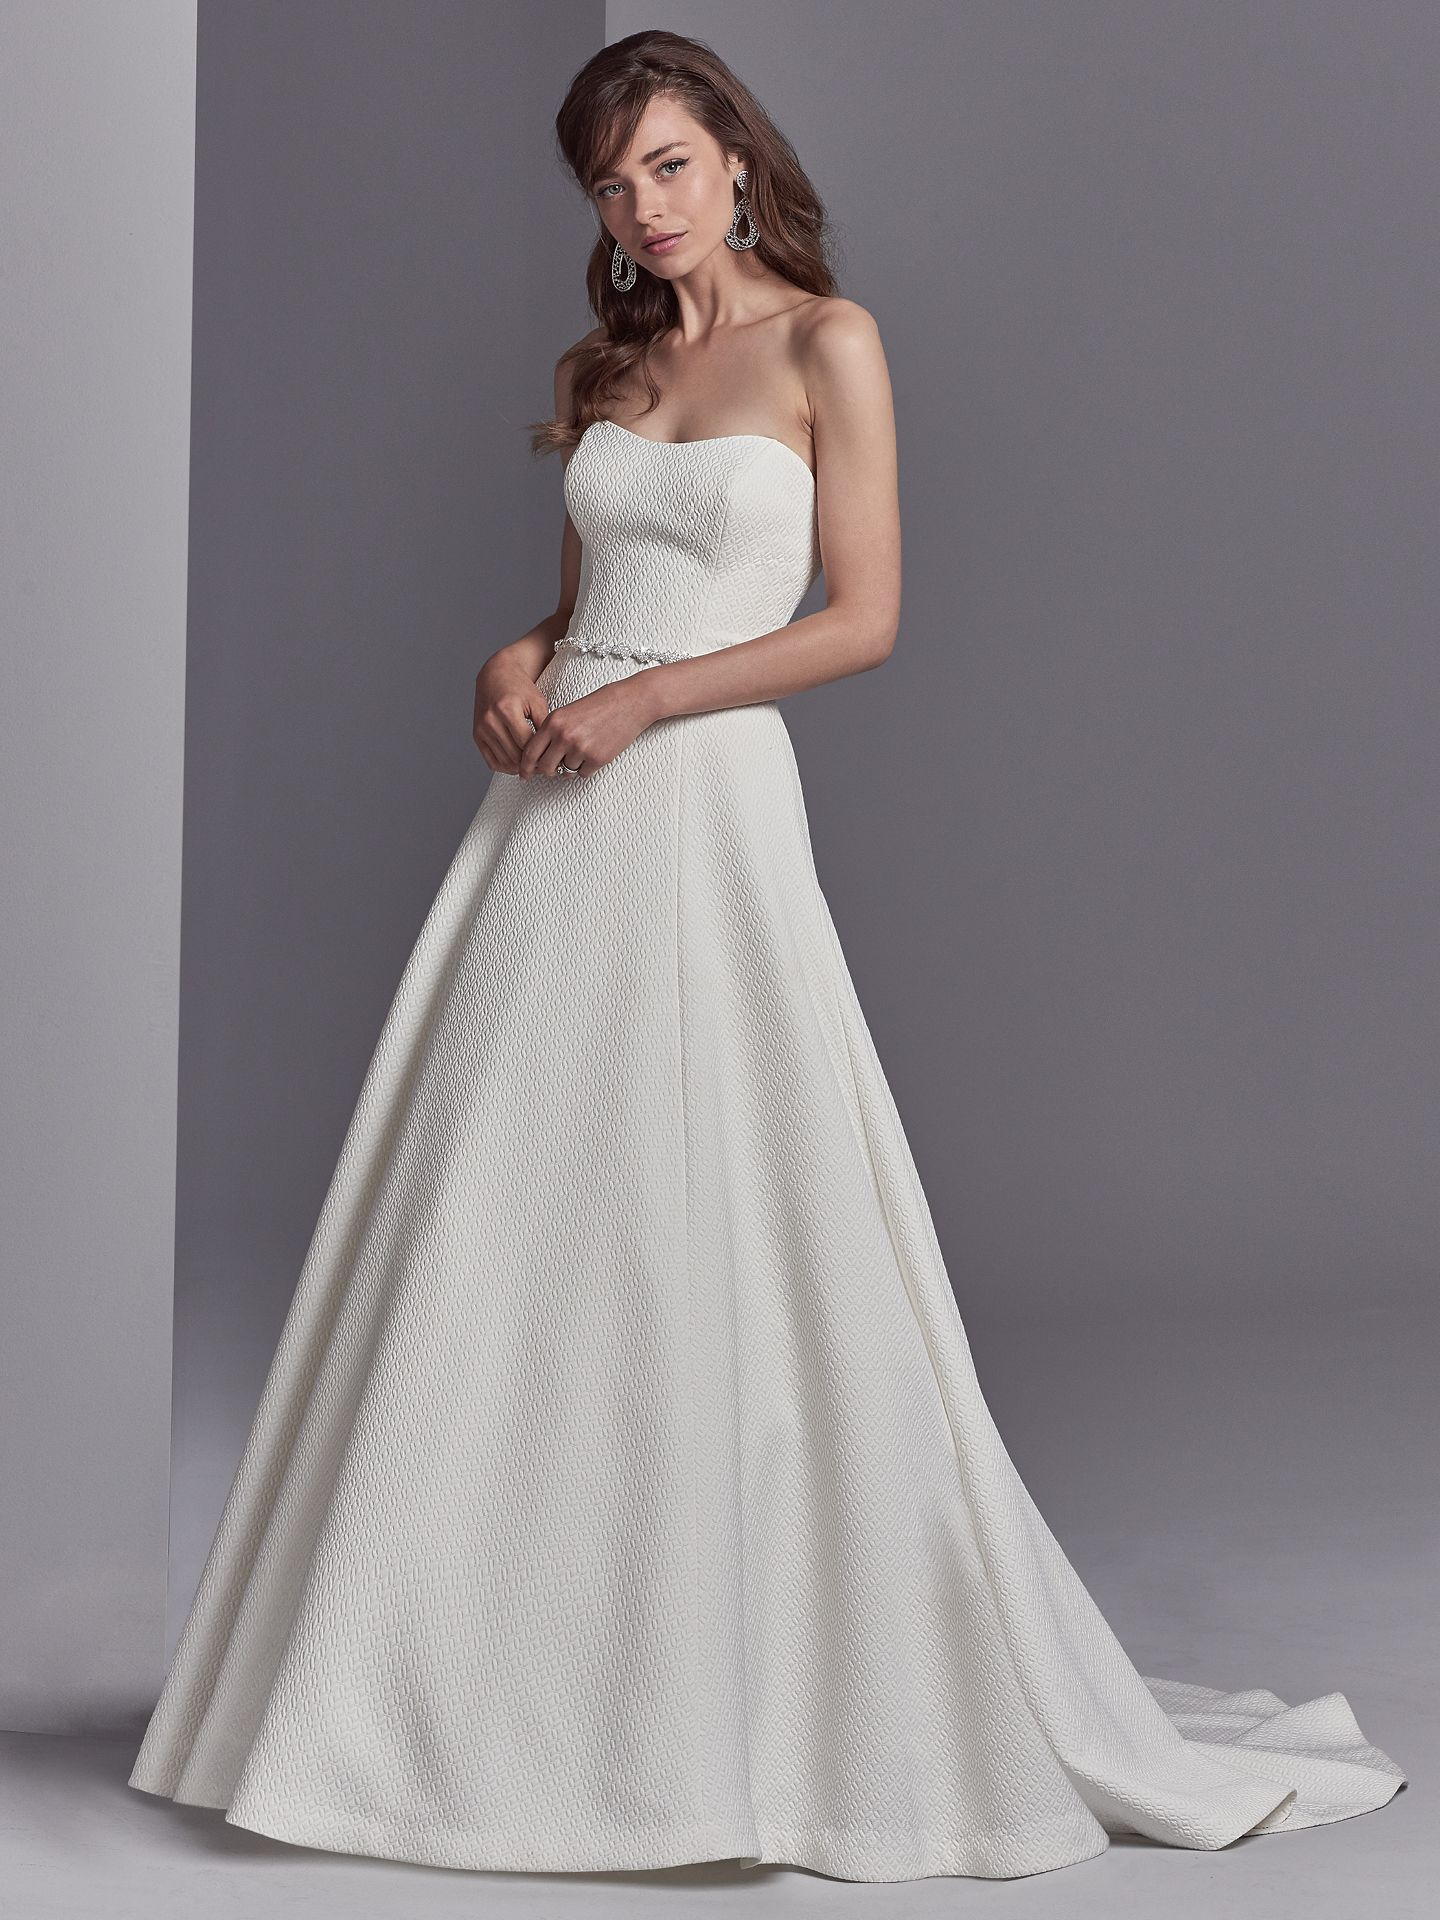 Comprised of Alodia specialty textured fabric, this unique A-line wedding dress features a beaded belt accented in Swarovski crystals and a strapless scoop neckline. Lined with shapewear for a figure-flattering fit. - The Latest Wedding Dress Trends for Engagement Season 2018